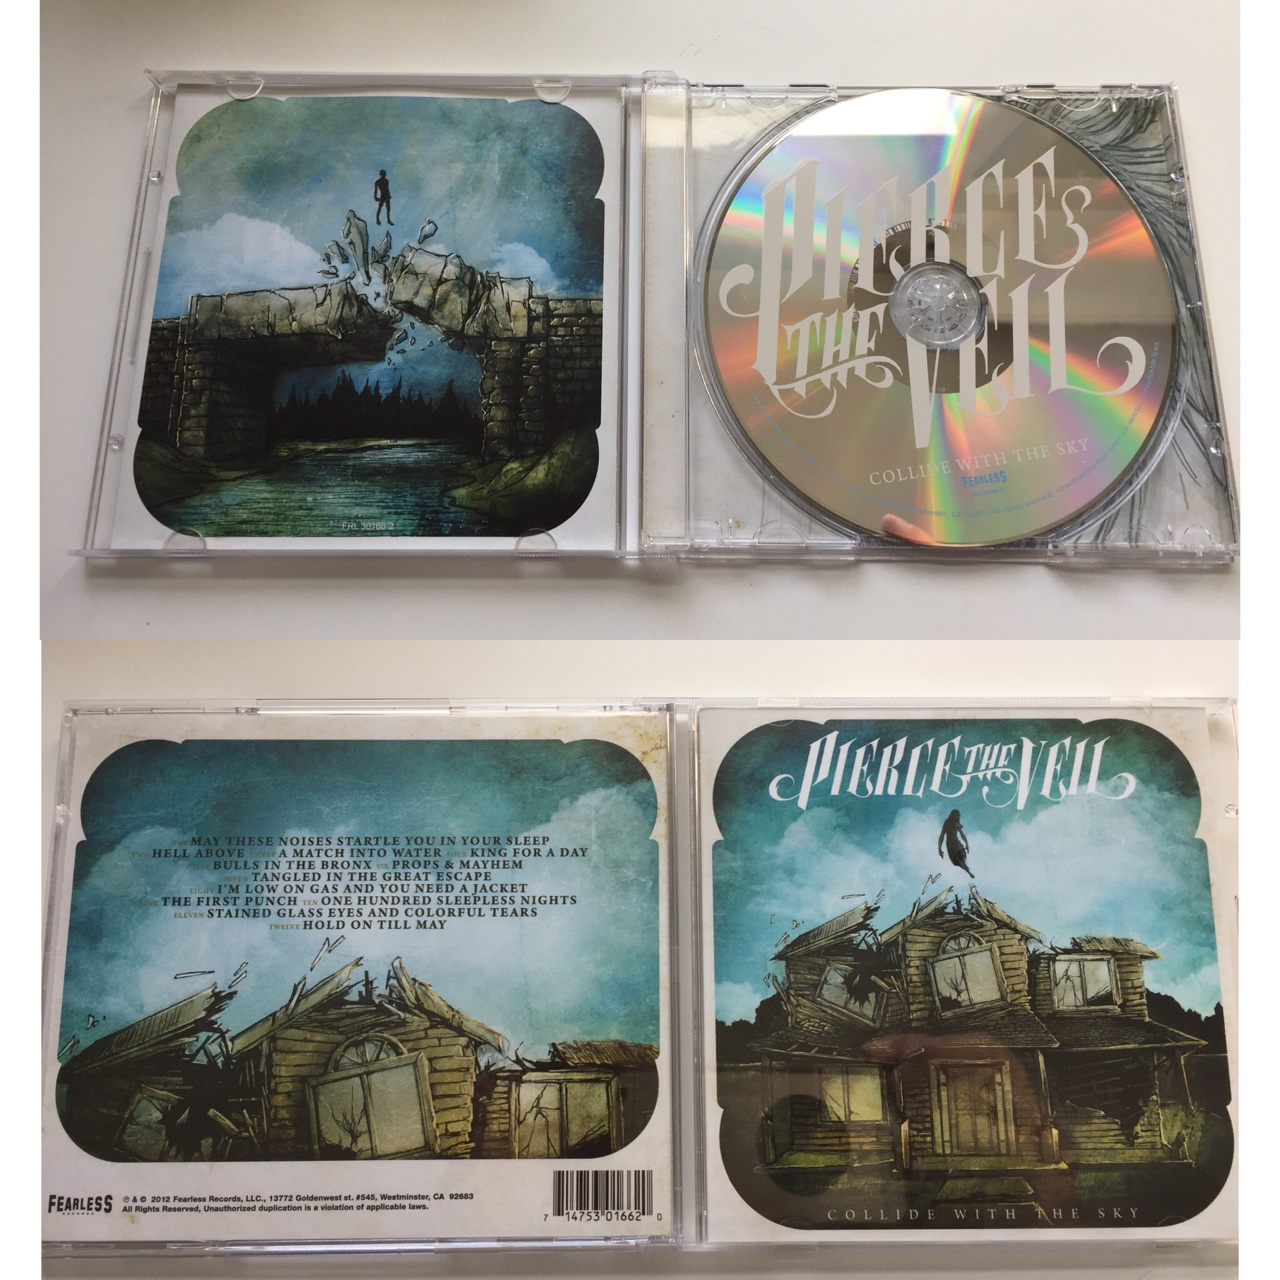 Pierce The Veil Collide With The Sky Cd Looking Depop